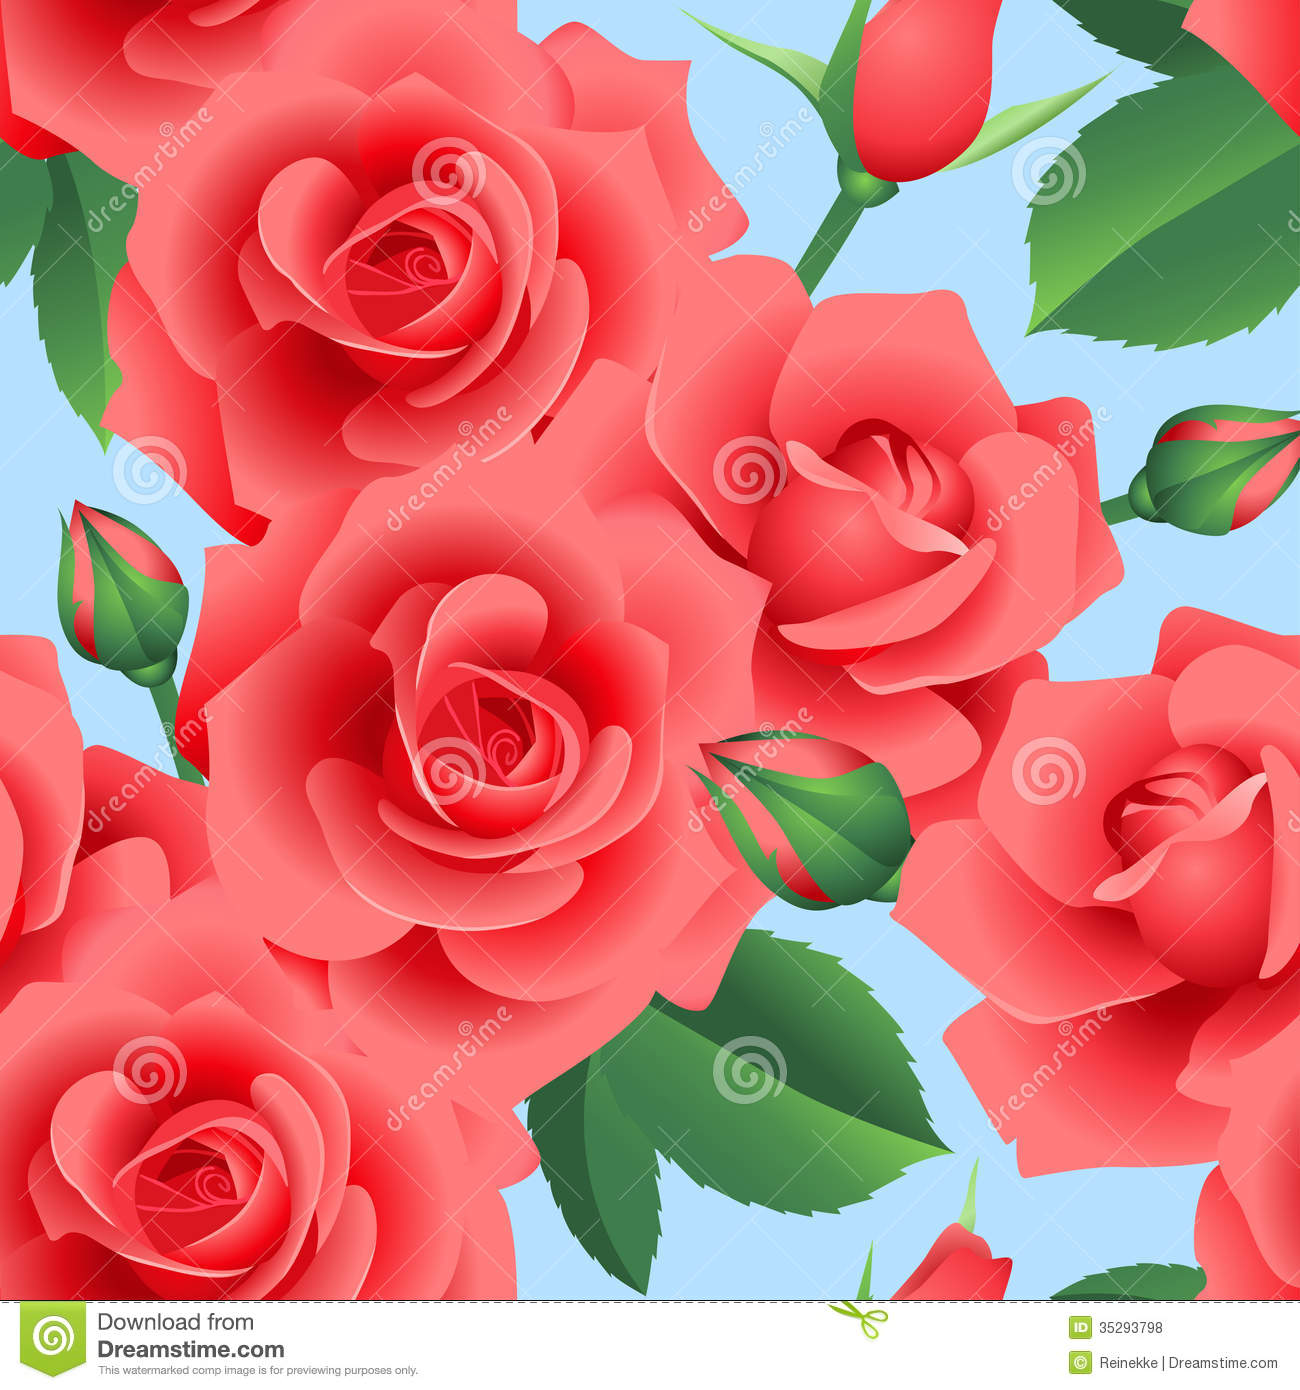 Floral Roses Red roses. floral seamless   1300 x 1390 jpeg 181kB